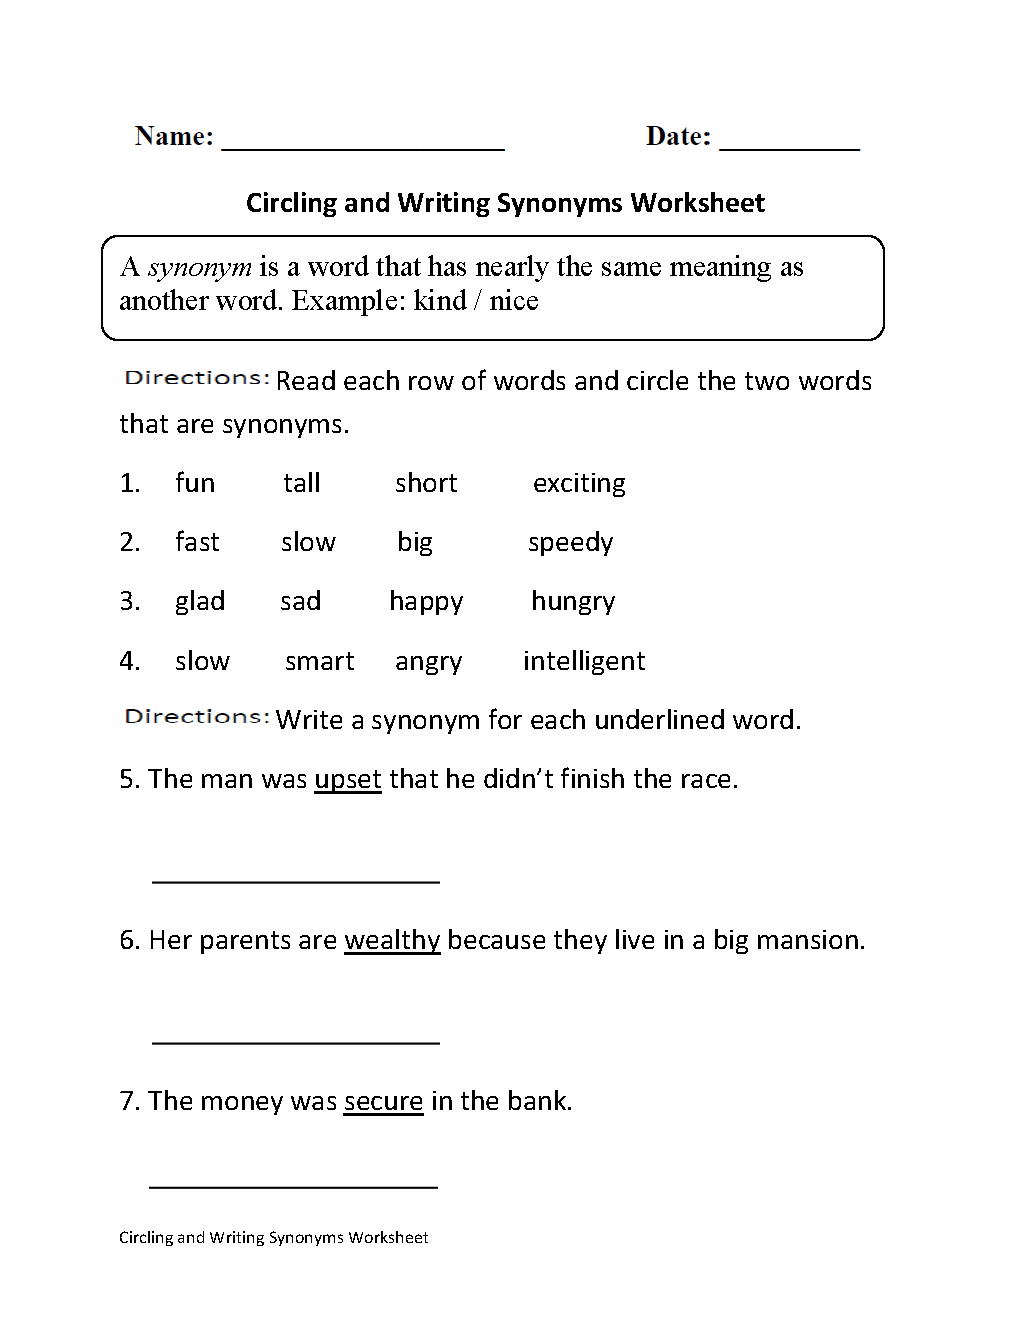 Worksheet Synonyms For Kindergarten synonyms for kindergarten worksheets happy or excited emotion englishlinx worksheets